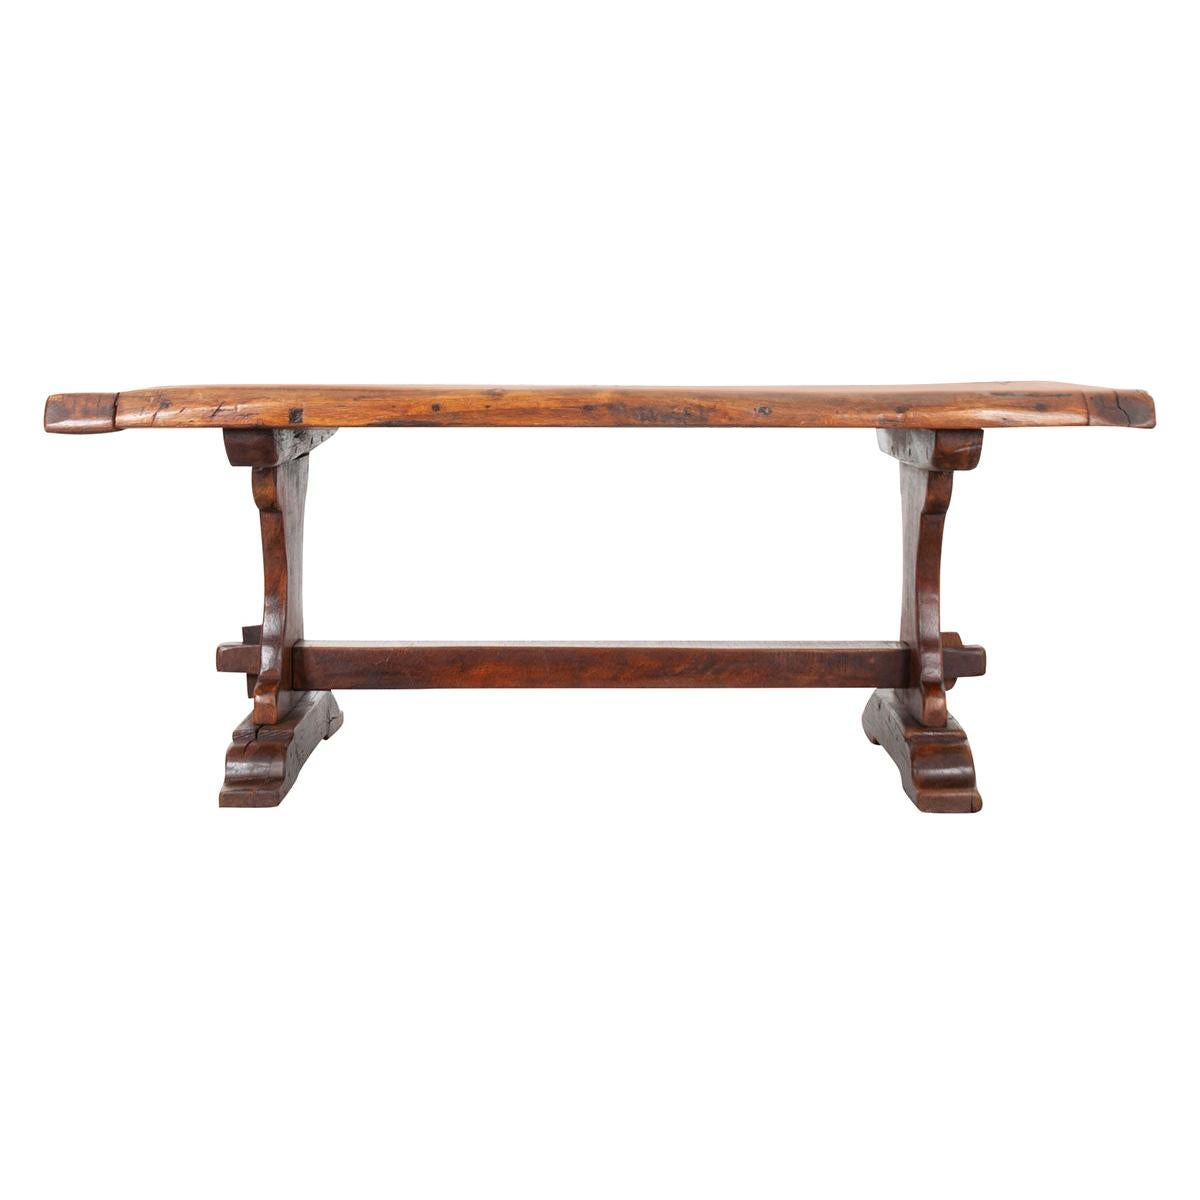 French 19th Century Solid Oak Trestle Table